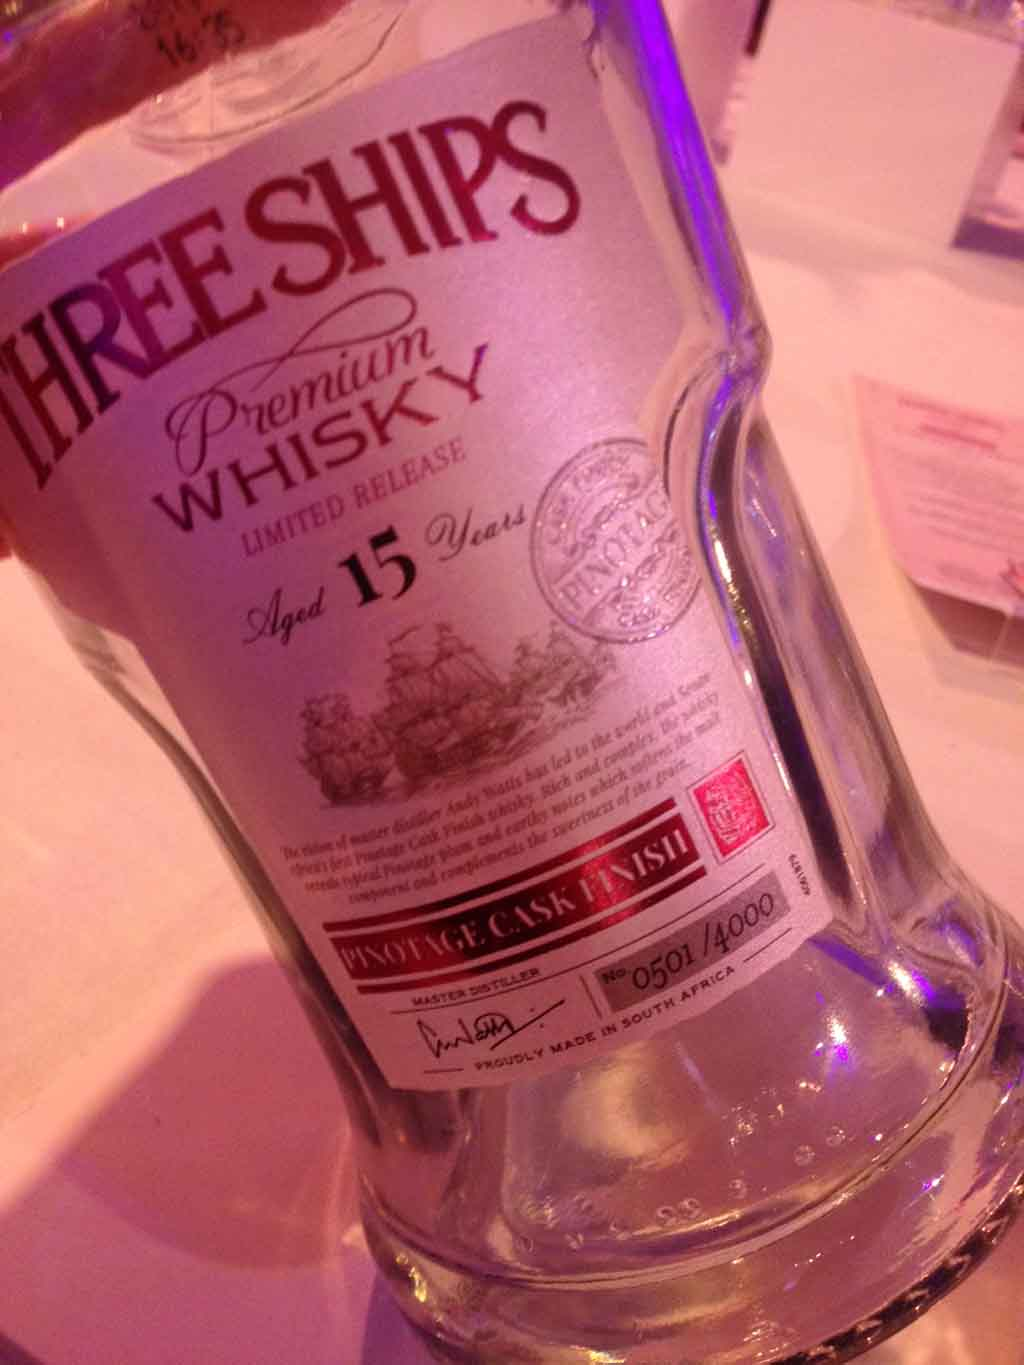 Three Ships Pinotage Cask Finish whisky